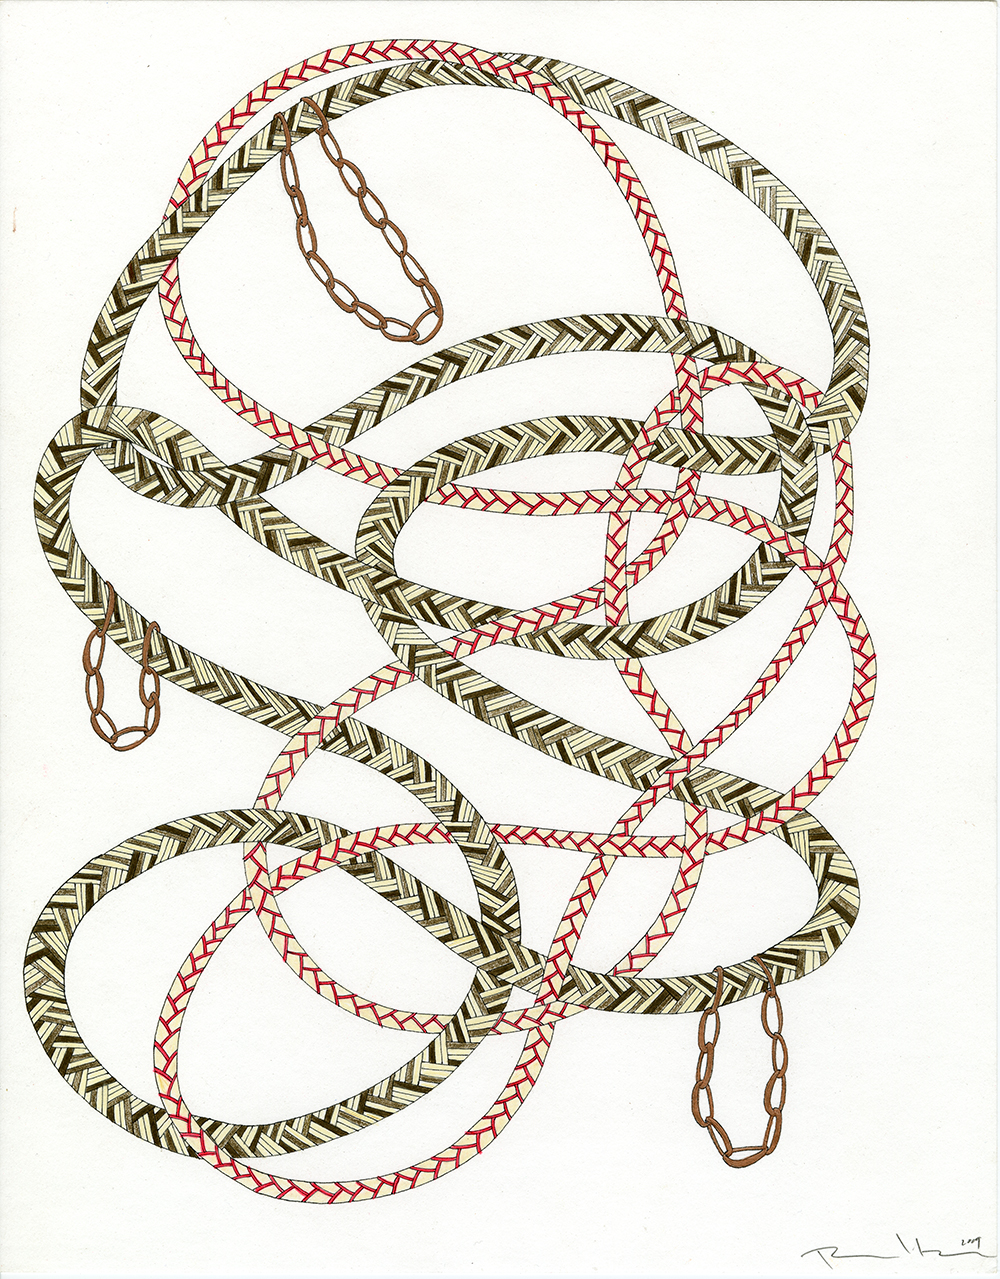 Ropes in Brown, Red, White, & Copper_11x14_2009_CC.jpg